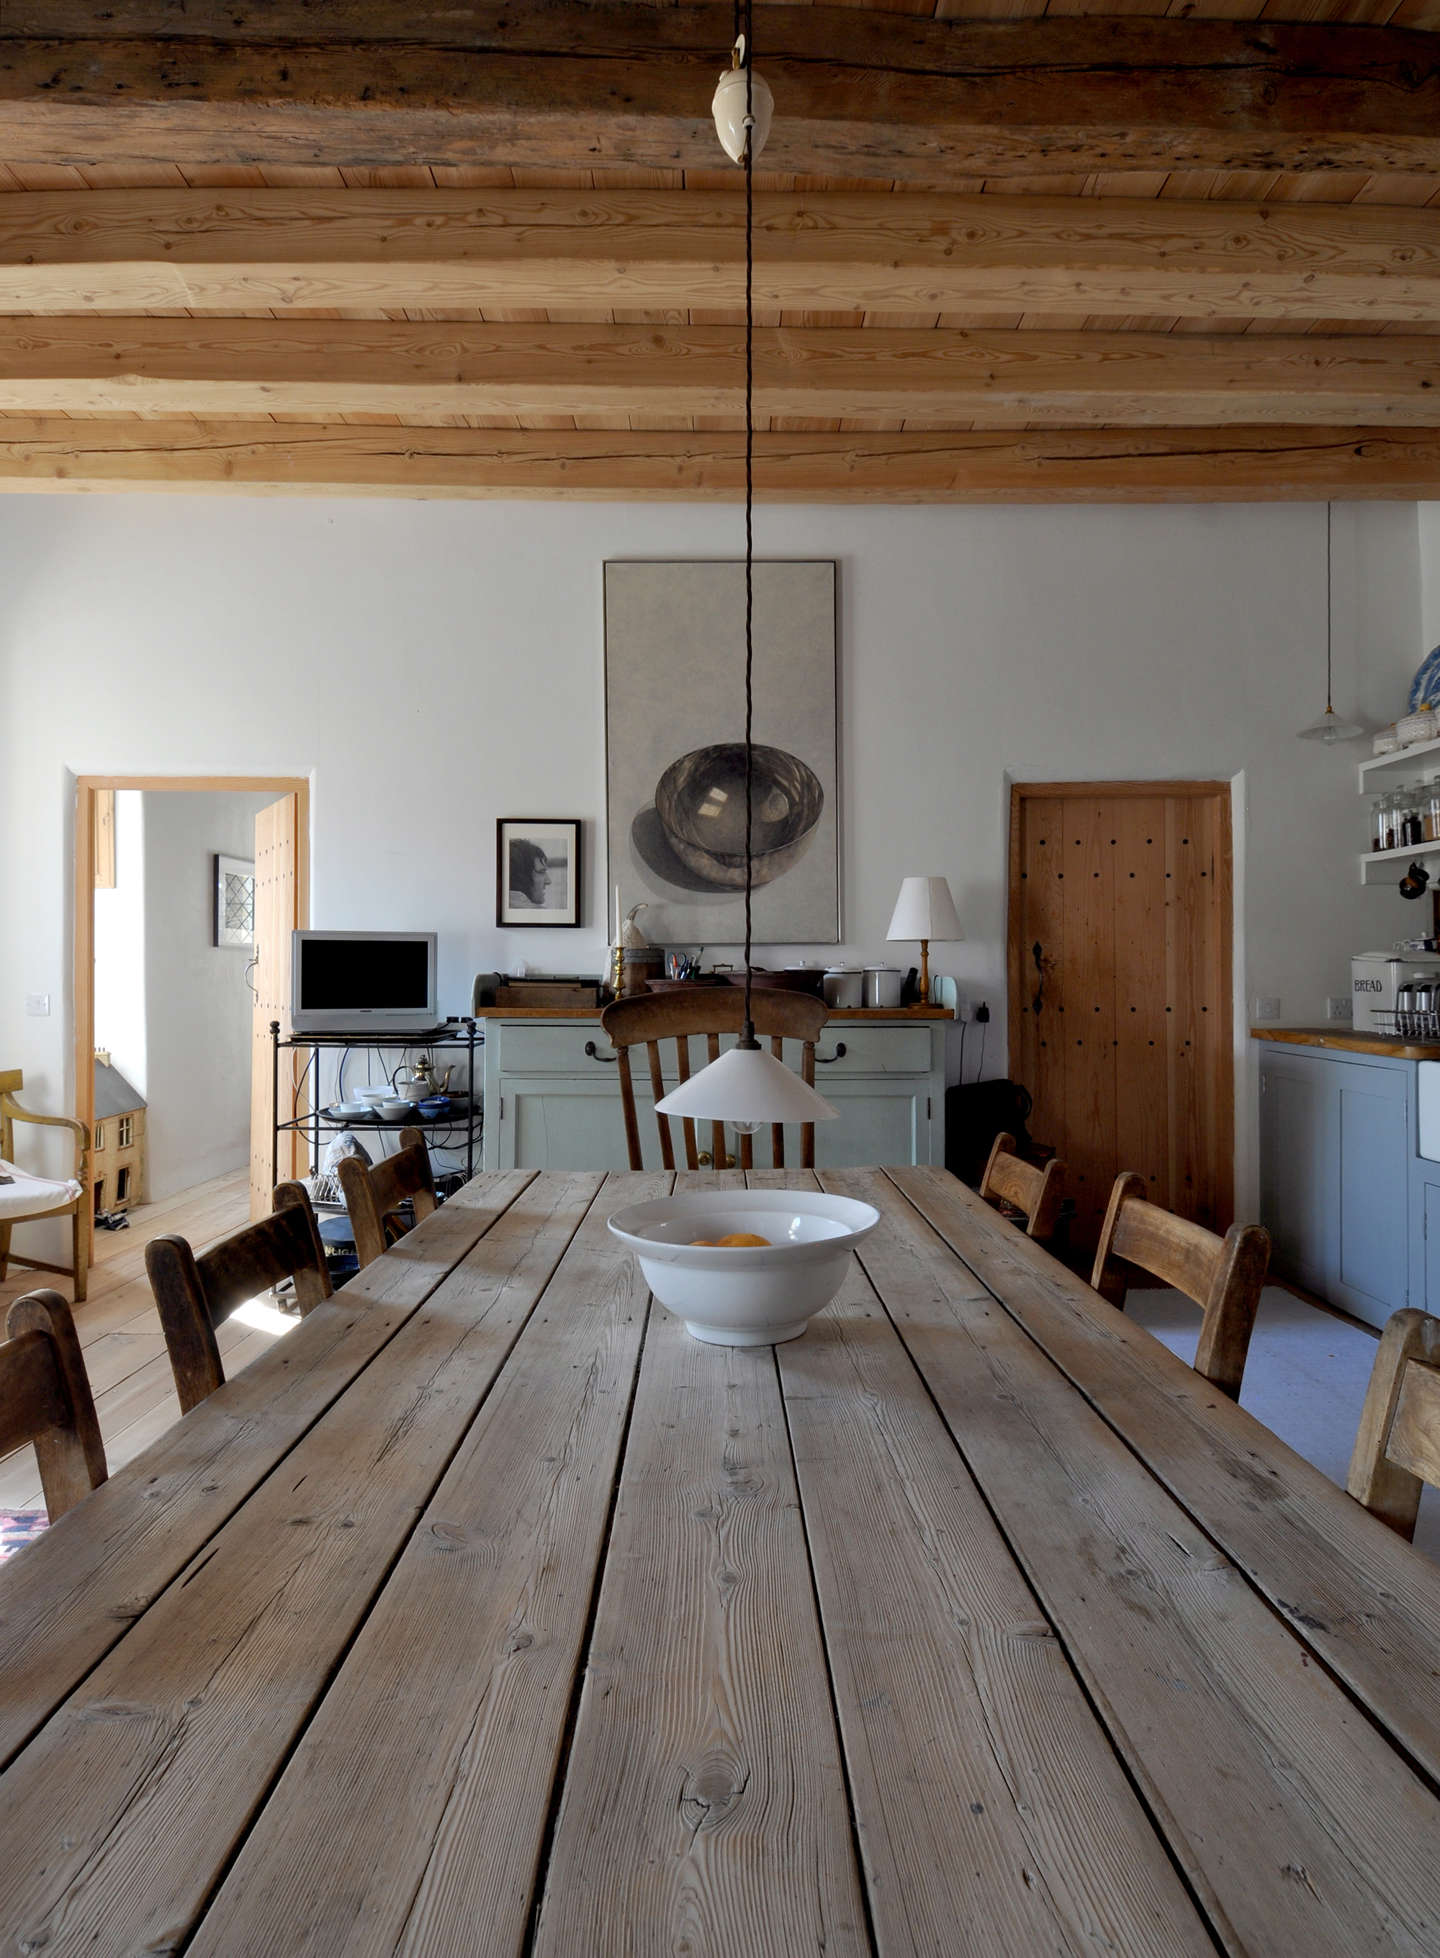 Smack-dab in the middle of this kitchen: an antique dining table with a pulley pendant light hovering over it. Photograph courtesy of Groves-Raines Architects, from Lamb's House: A Masterful Restoration of a th Century Home (Once Visited by Mary Queen of Scots).